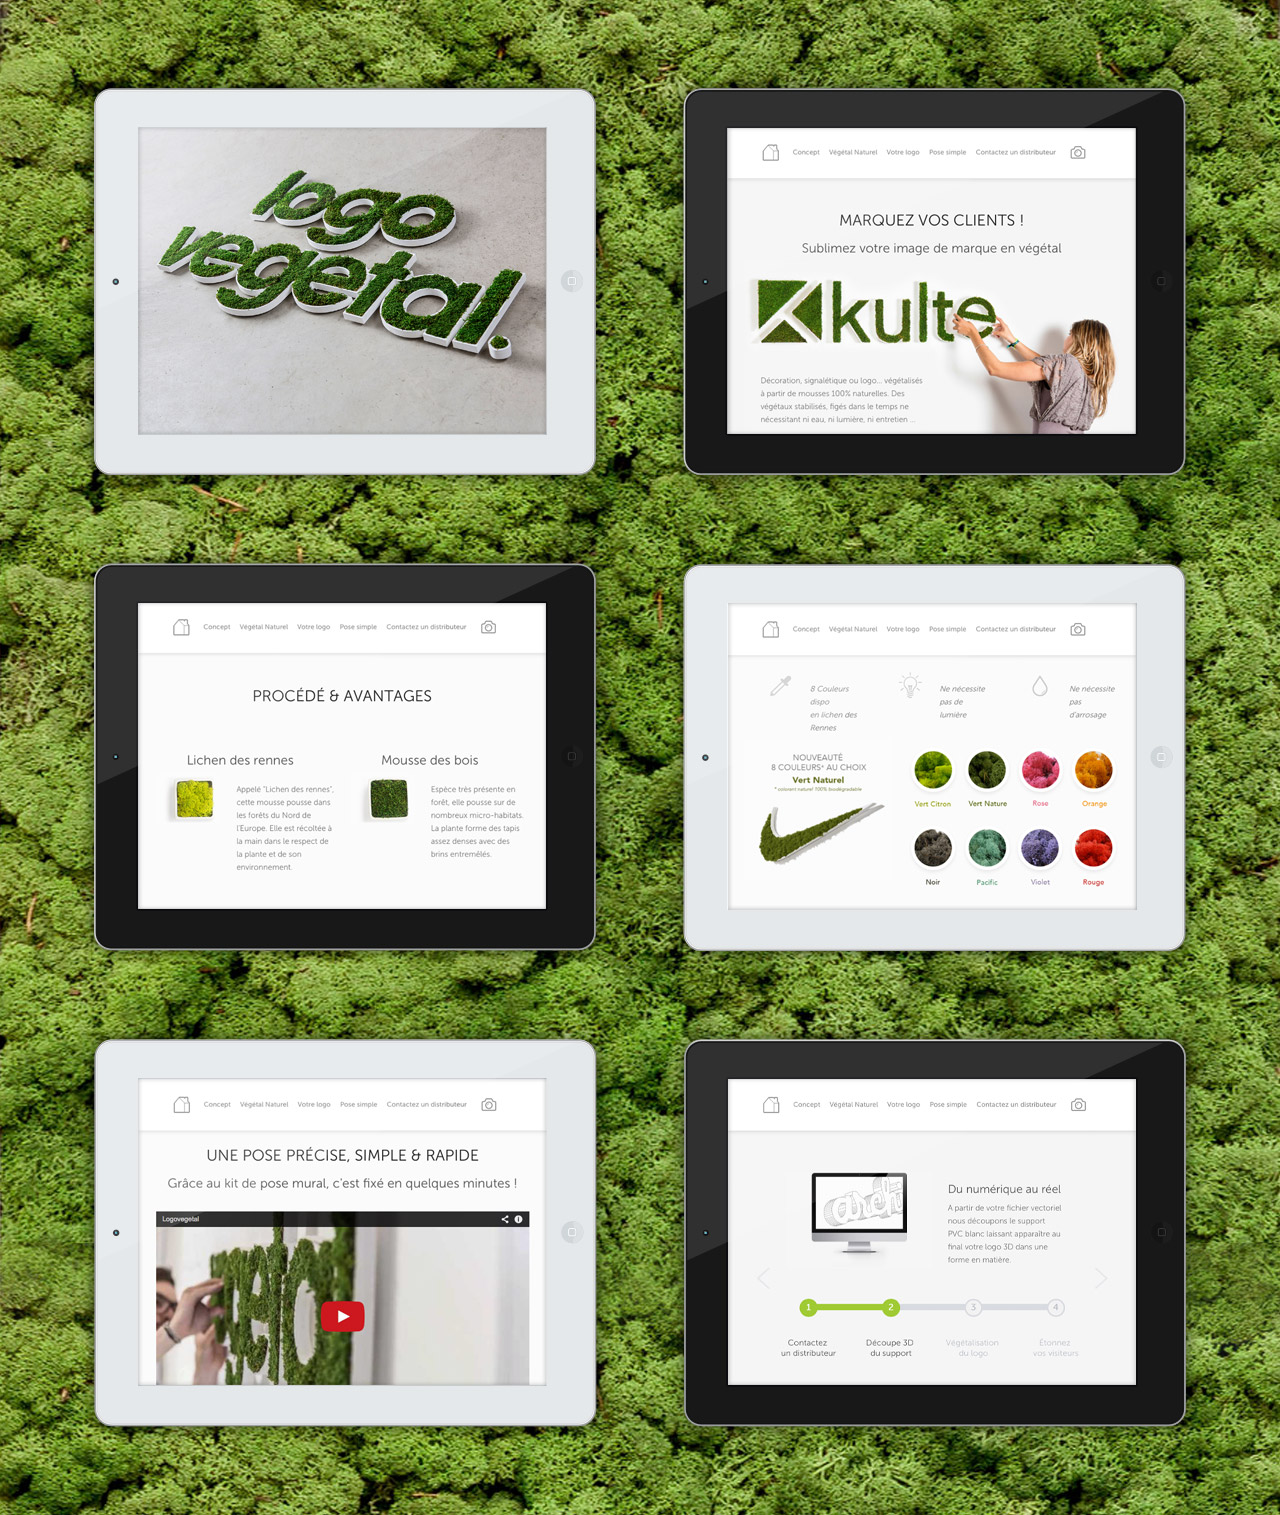 logo-vegetal-site-tablette-responsive-design-creation-communication-caconcept-alexis-cretin-graphiste